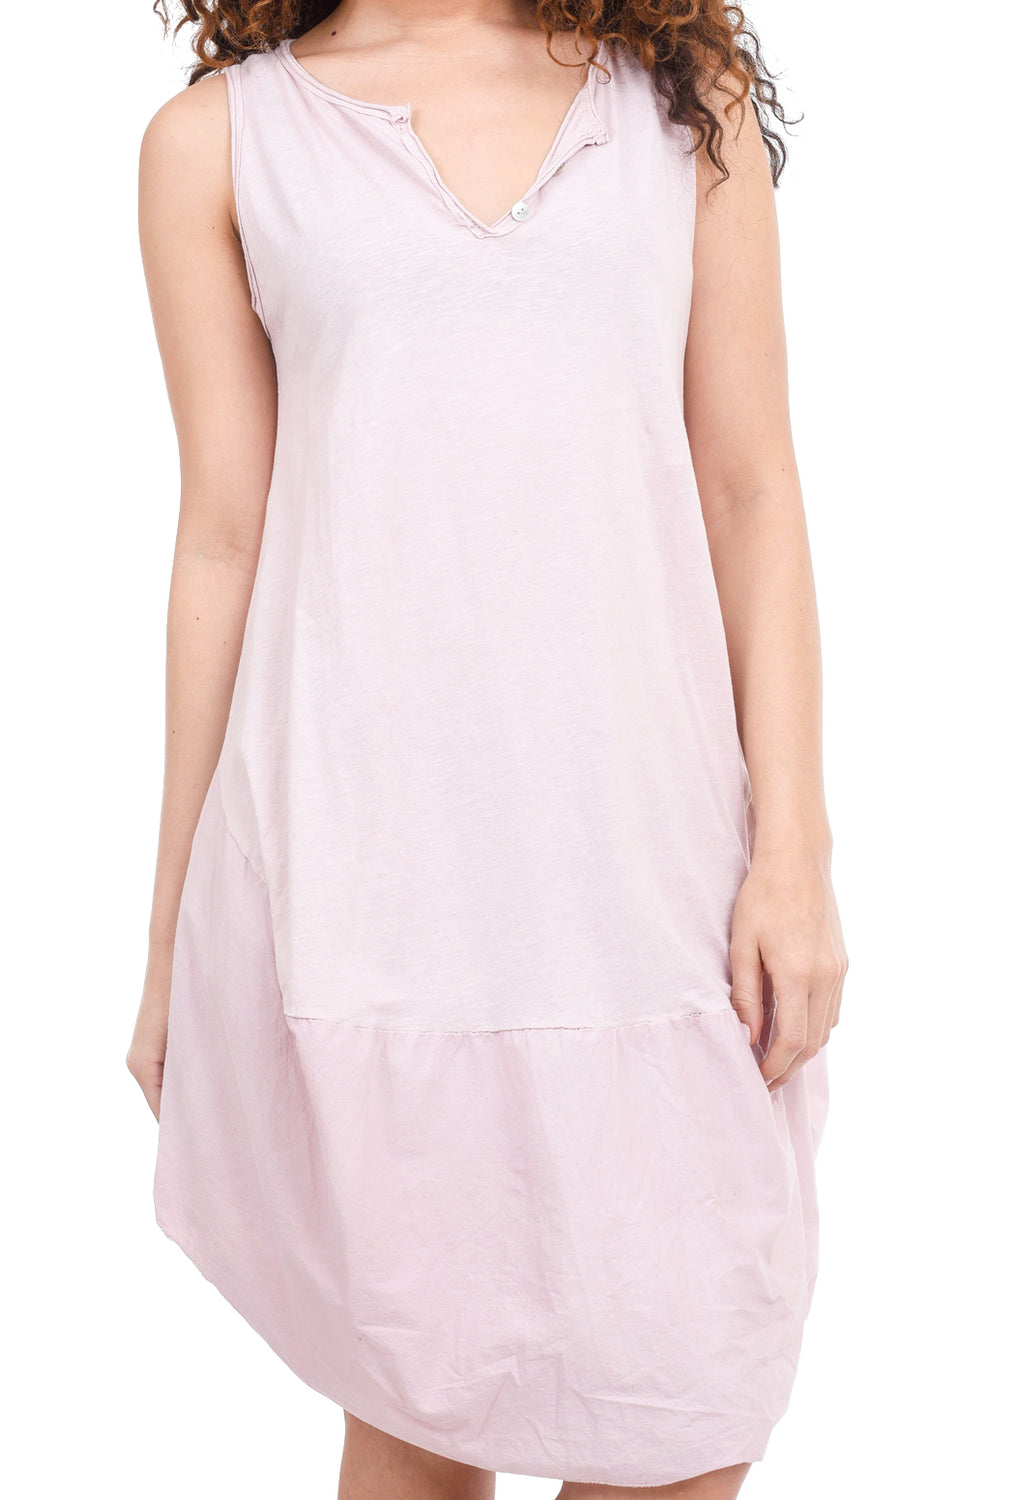 Oro Bonito Button-V Easy Dress, Pink One Size Pink